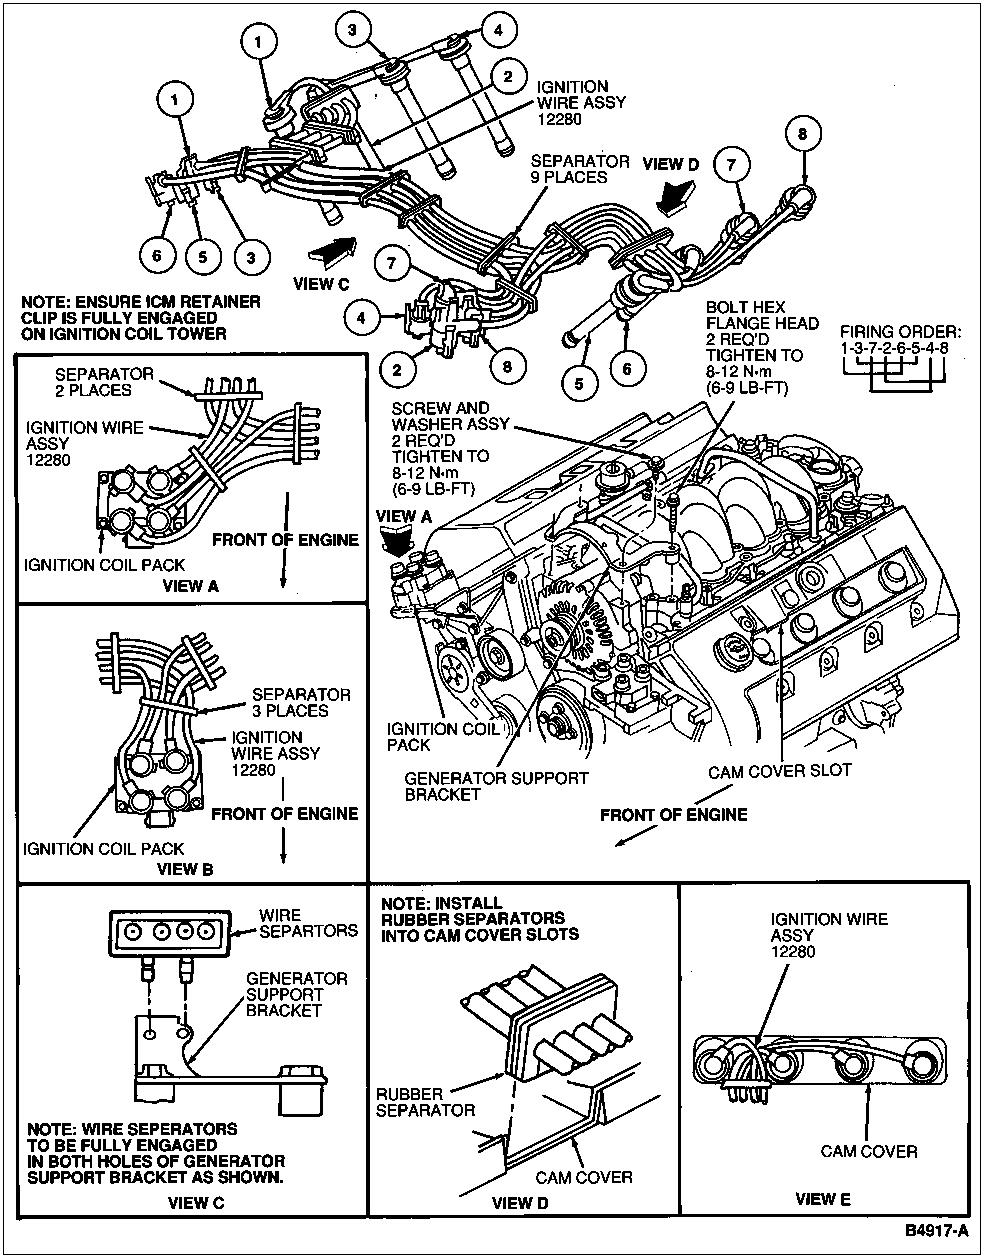 hight resolution of 2011 lincoln mkx wiring diagram wiring diagram schematics 2000 lincoln navigator engine diagram 2010 lincoln mkx engine diagram